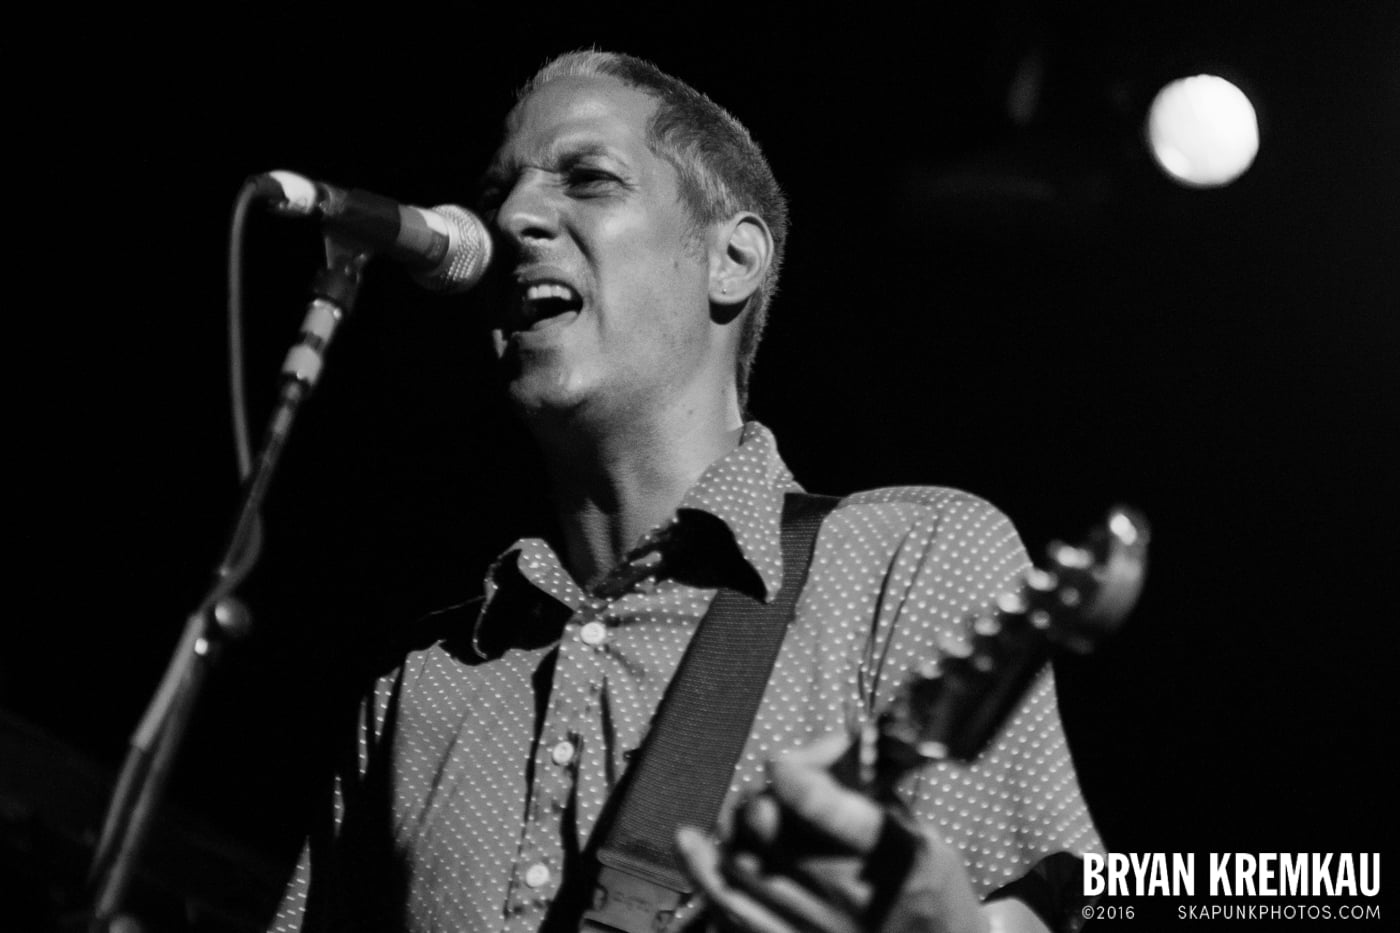 Thumper @ Apple Stomp: Day 2, Irving Plaza, NYC - June 1st 2013 - Bryan Kremkau (5)